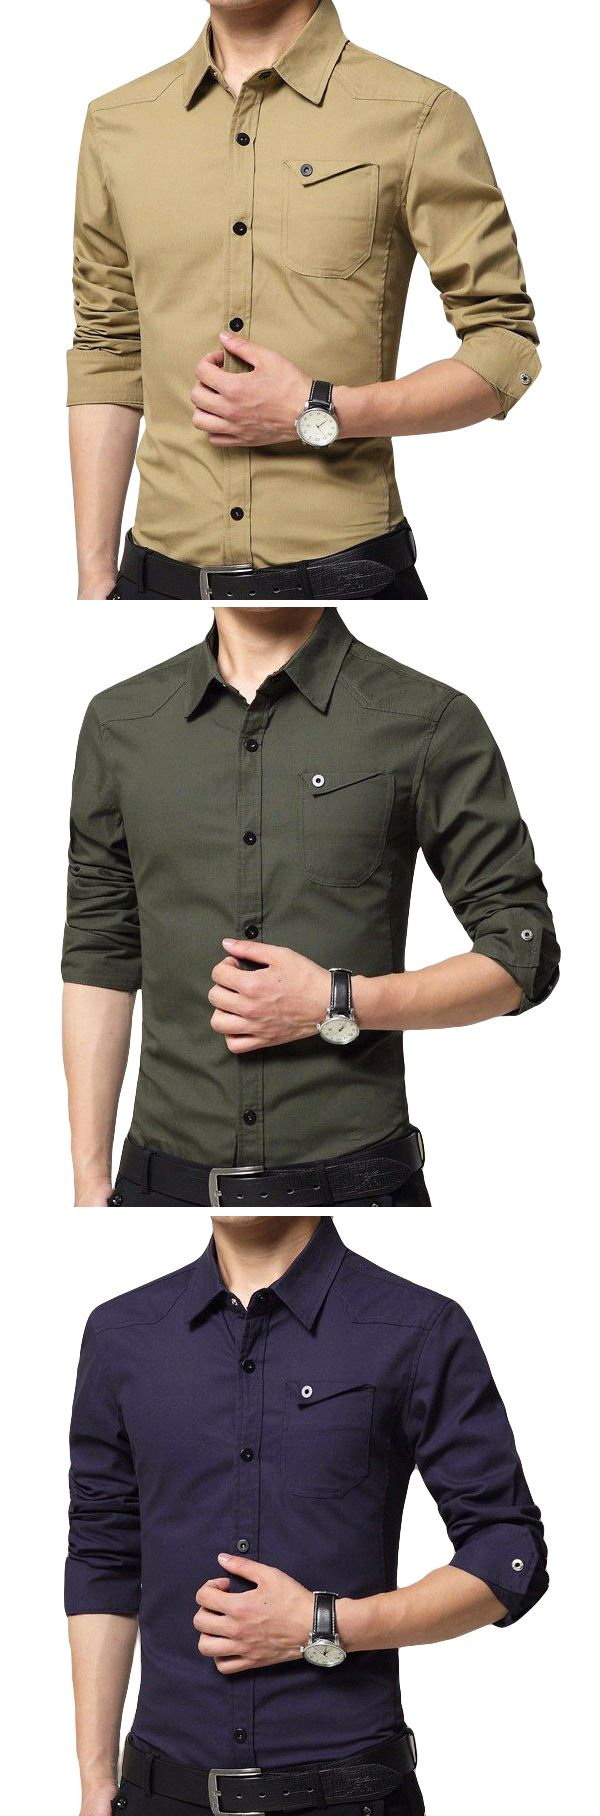 Mens Large Size Casual Long Sleeved Shirts : Cotton Pure Color Cargo  Slim Fit Shirts